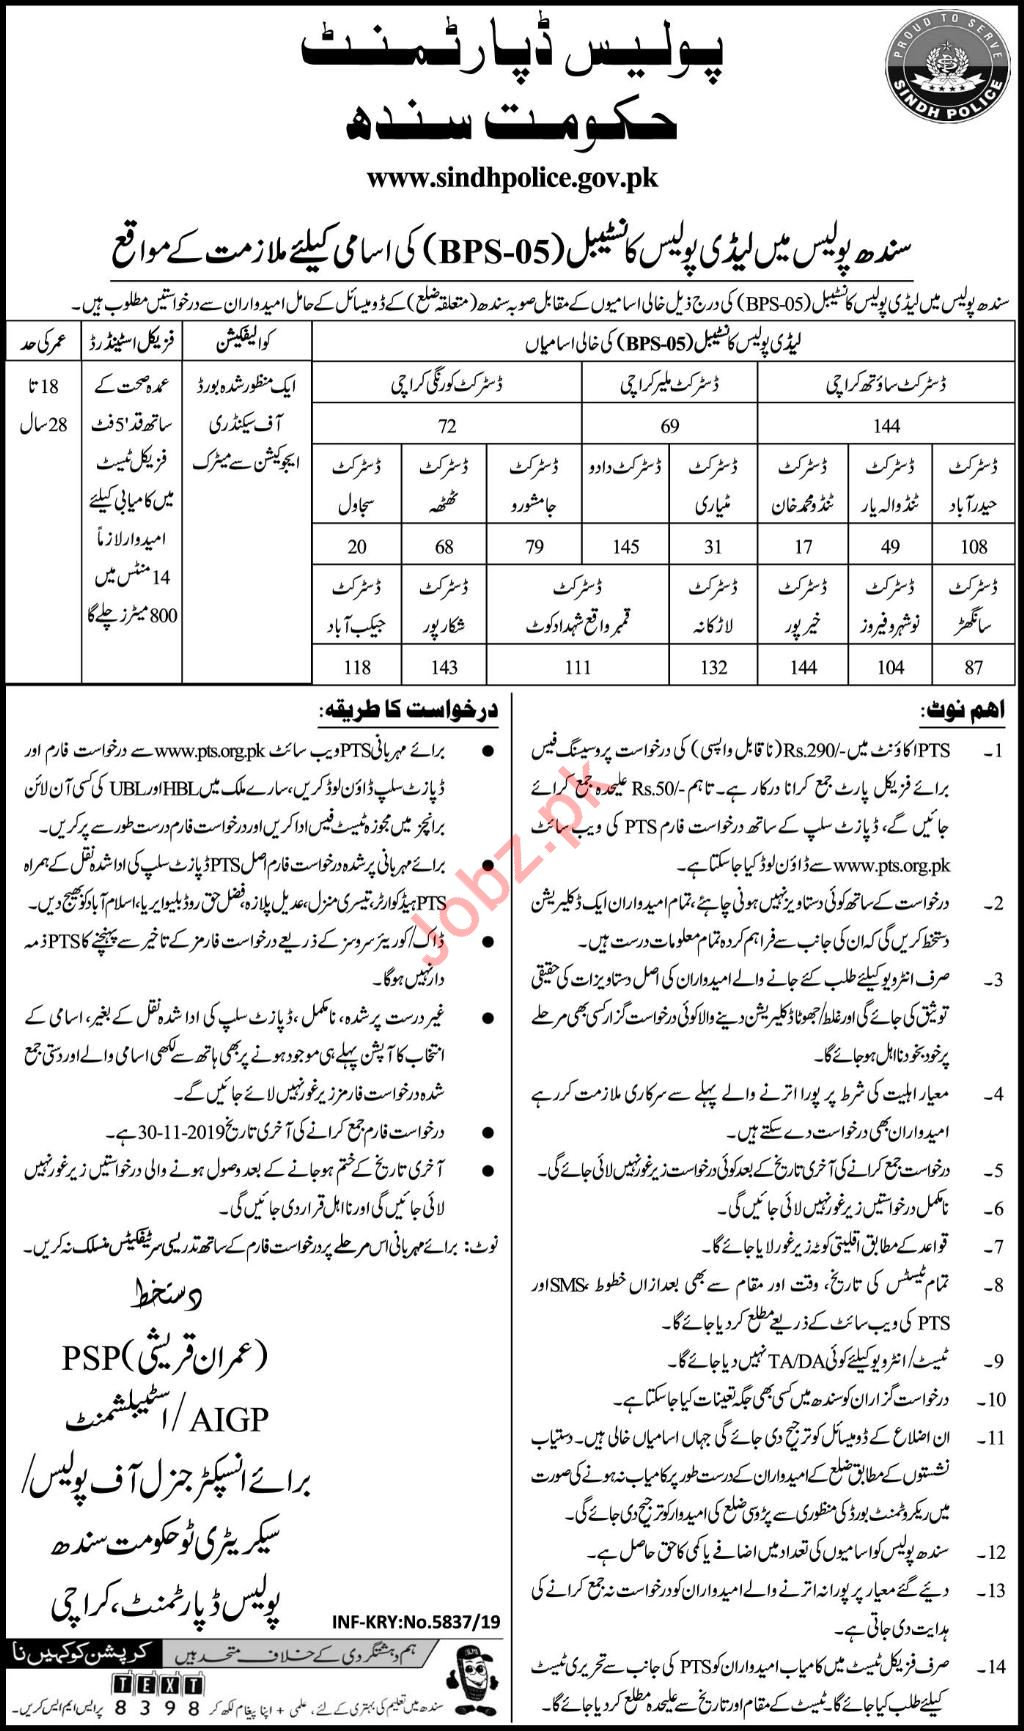 Sindh Police Jobs For Lady Police Constable via PTS